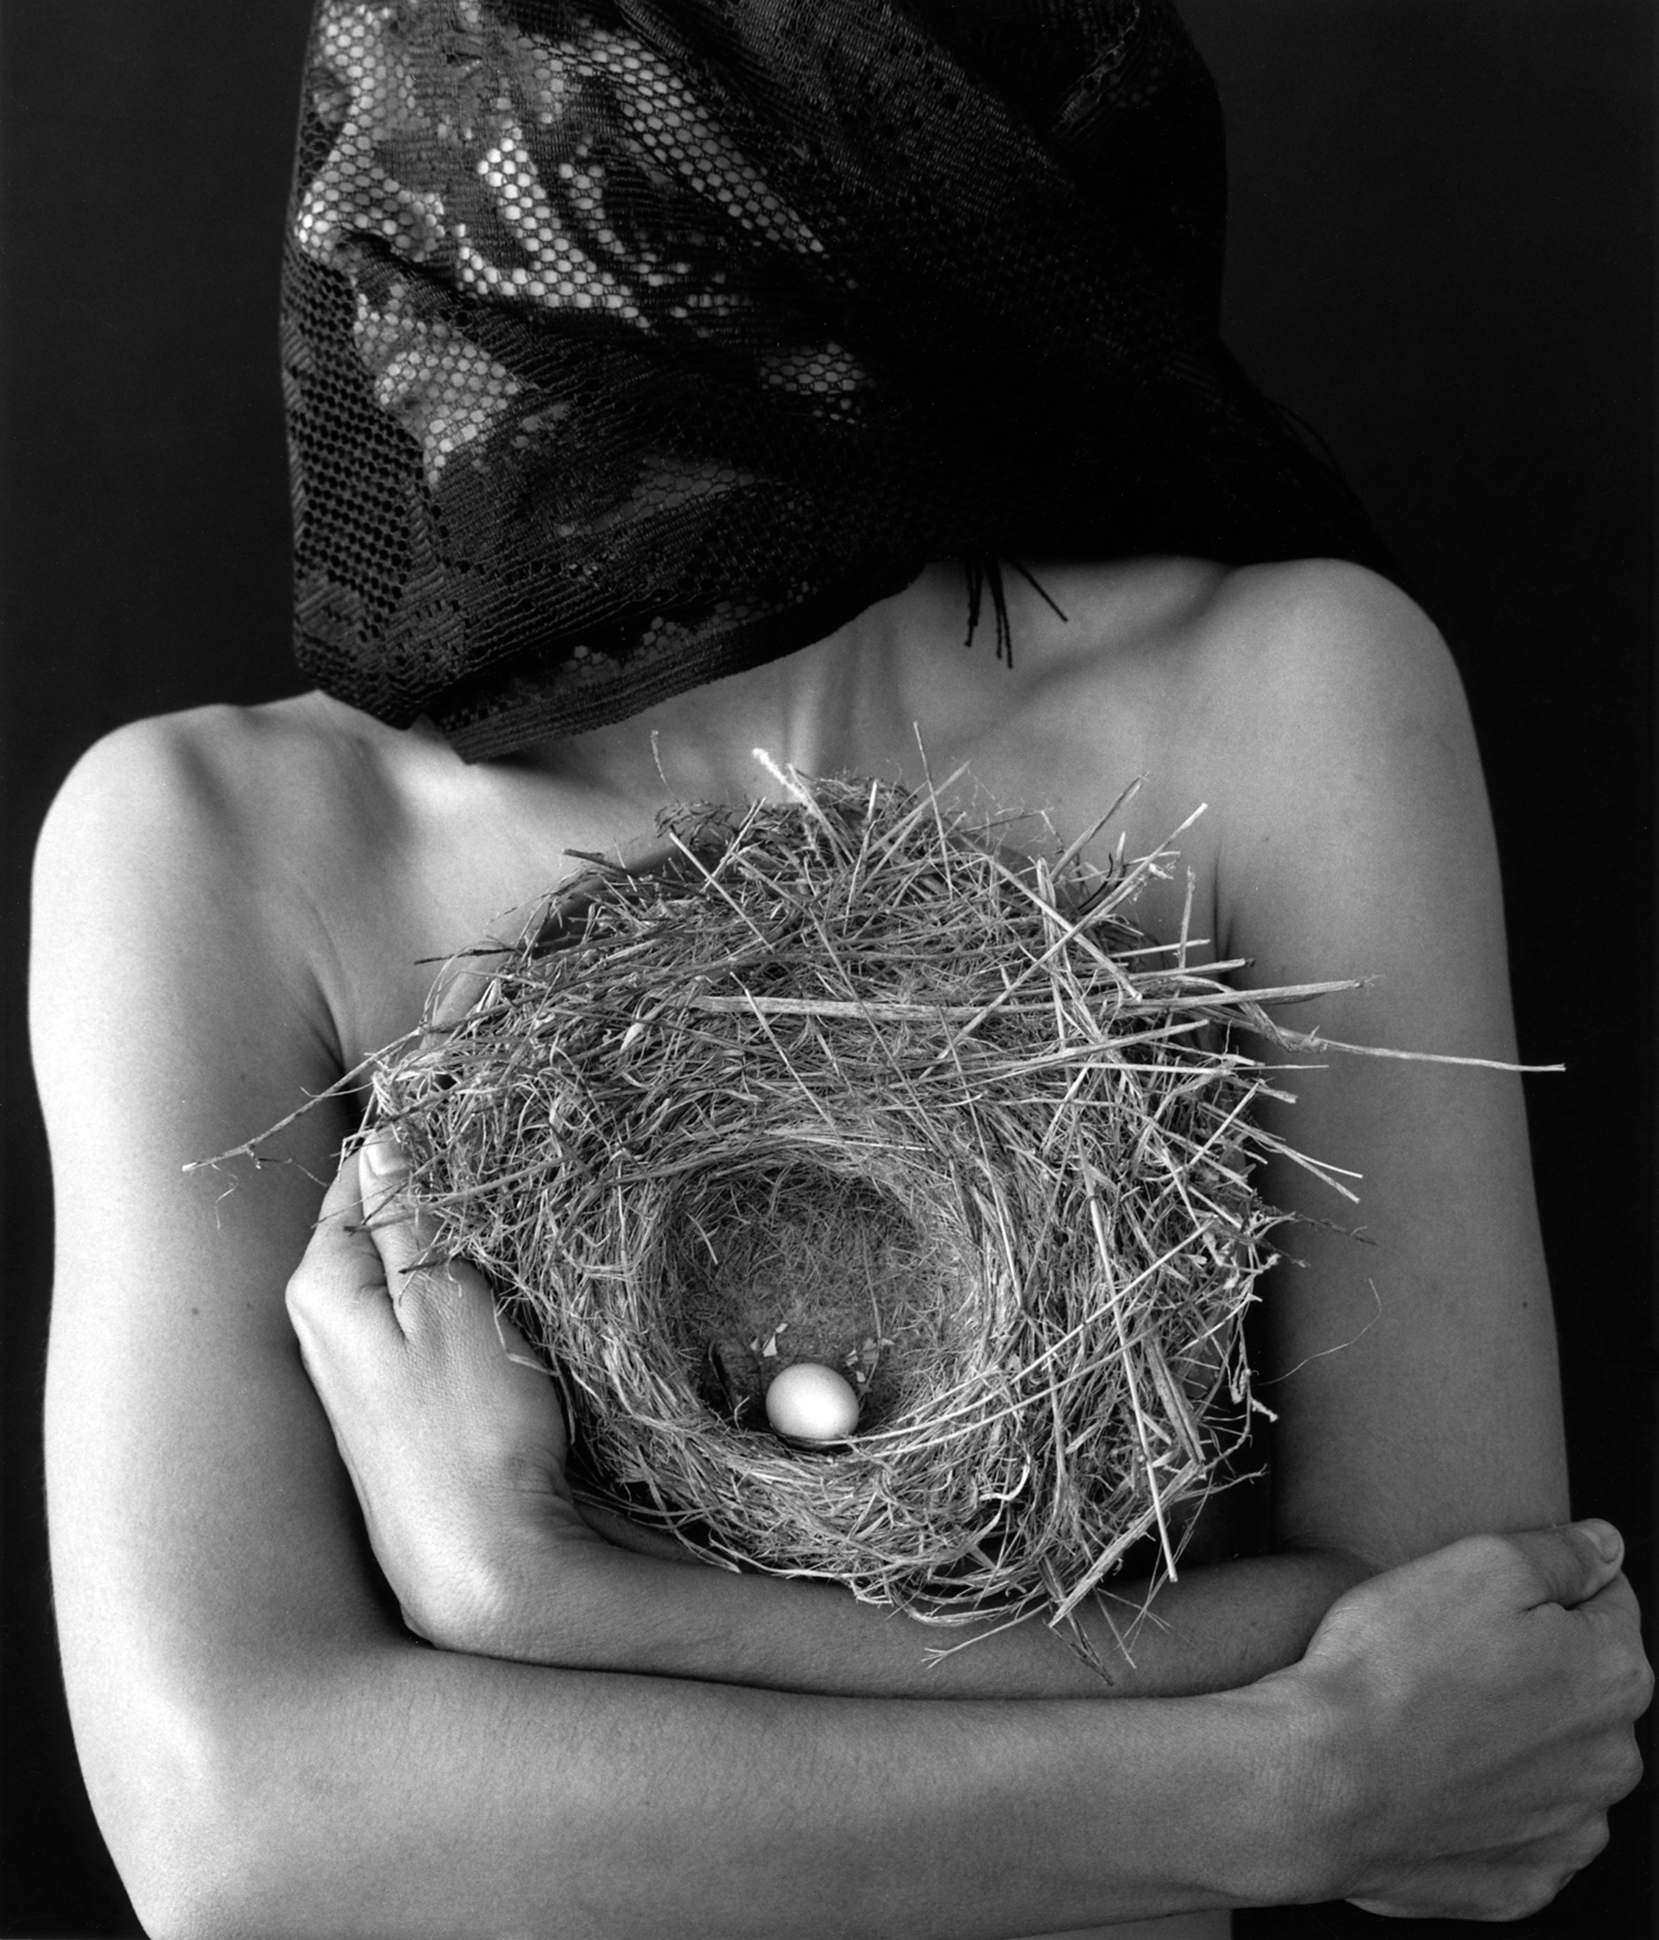 Black and white portrait of a nude woman covered by a nest with an egg, her face partially obscured by a lace veil